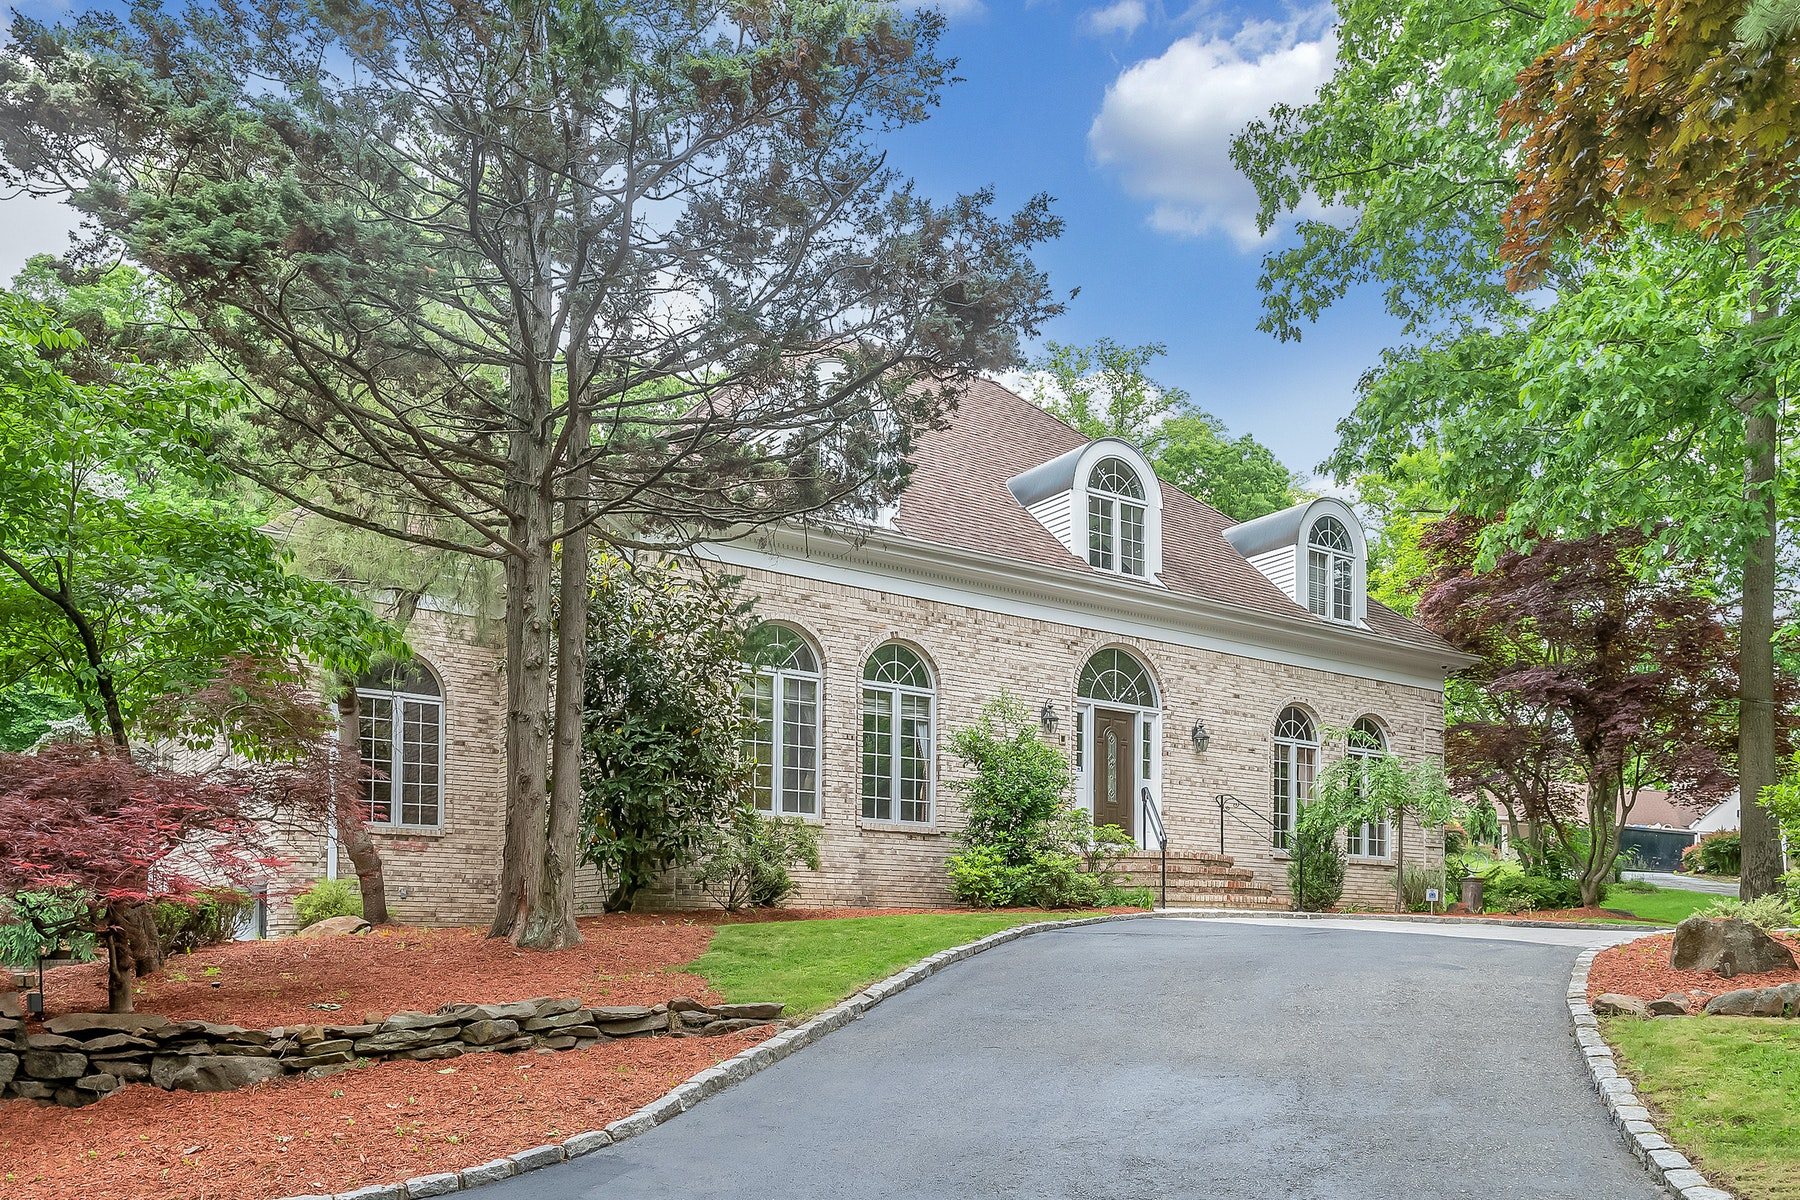 Single Family Homes for Sale at Custom Built Center Hall Colonial 107 West Greenbrook Road, North Caldwell, New Jersey 07006 United States